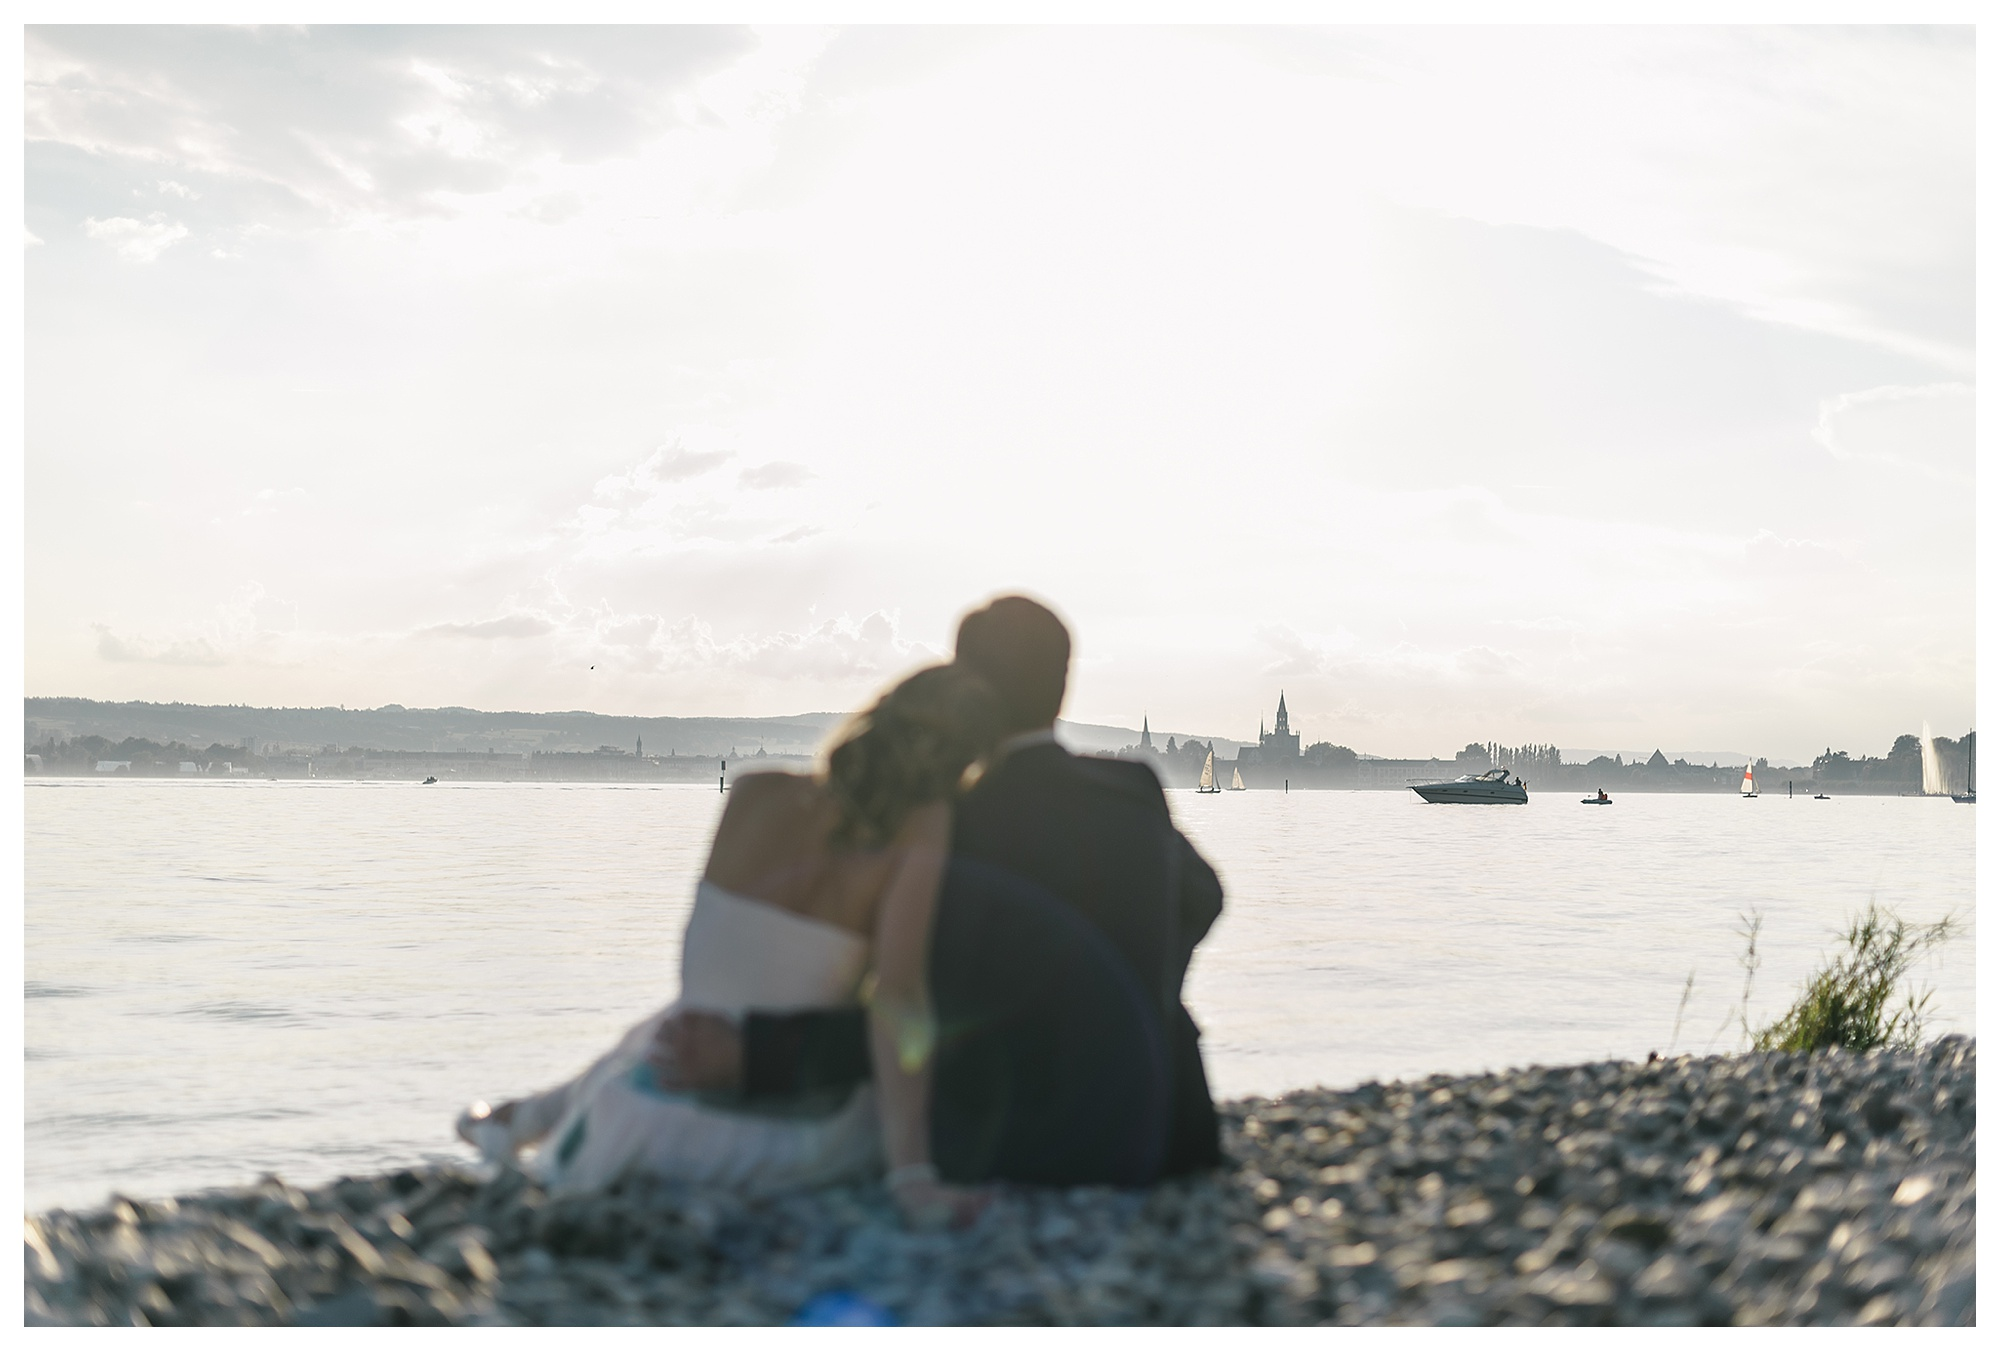 Fotograf Konstanz - Hochzeitsreportage Konstanz Raphael Nicole Elmar Feuerbacher Photography Hochzeit Portrait 49 - Wedding in Constance at Lake of Constance  - 69 -